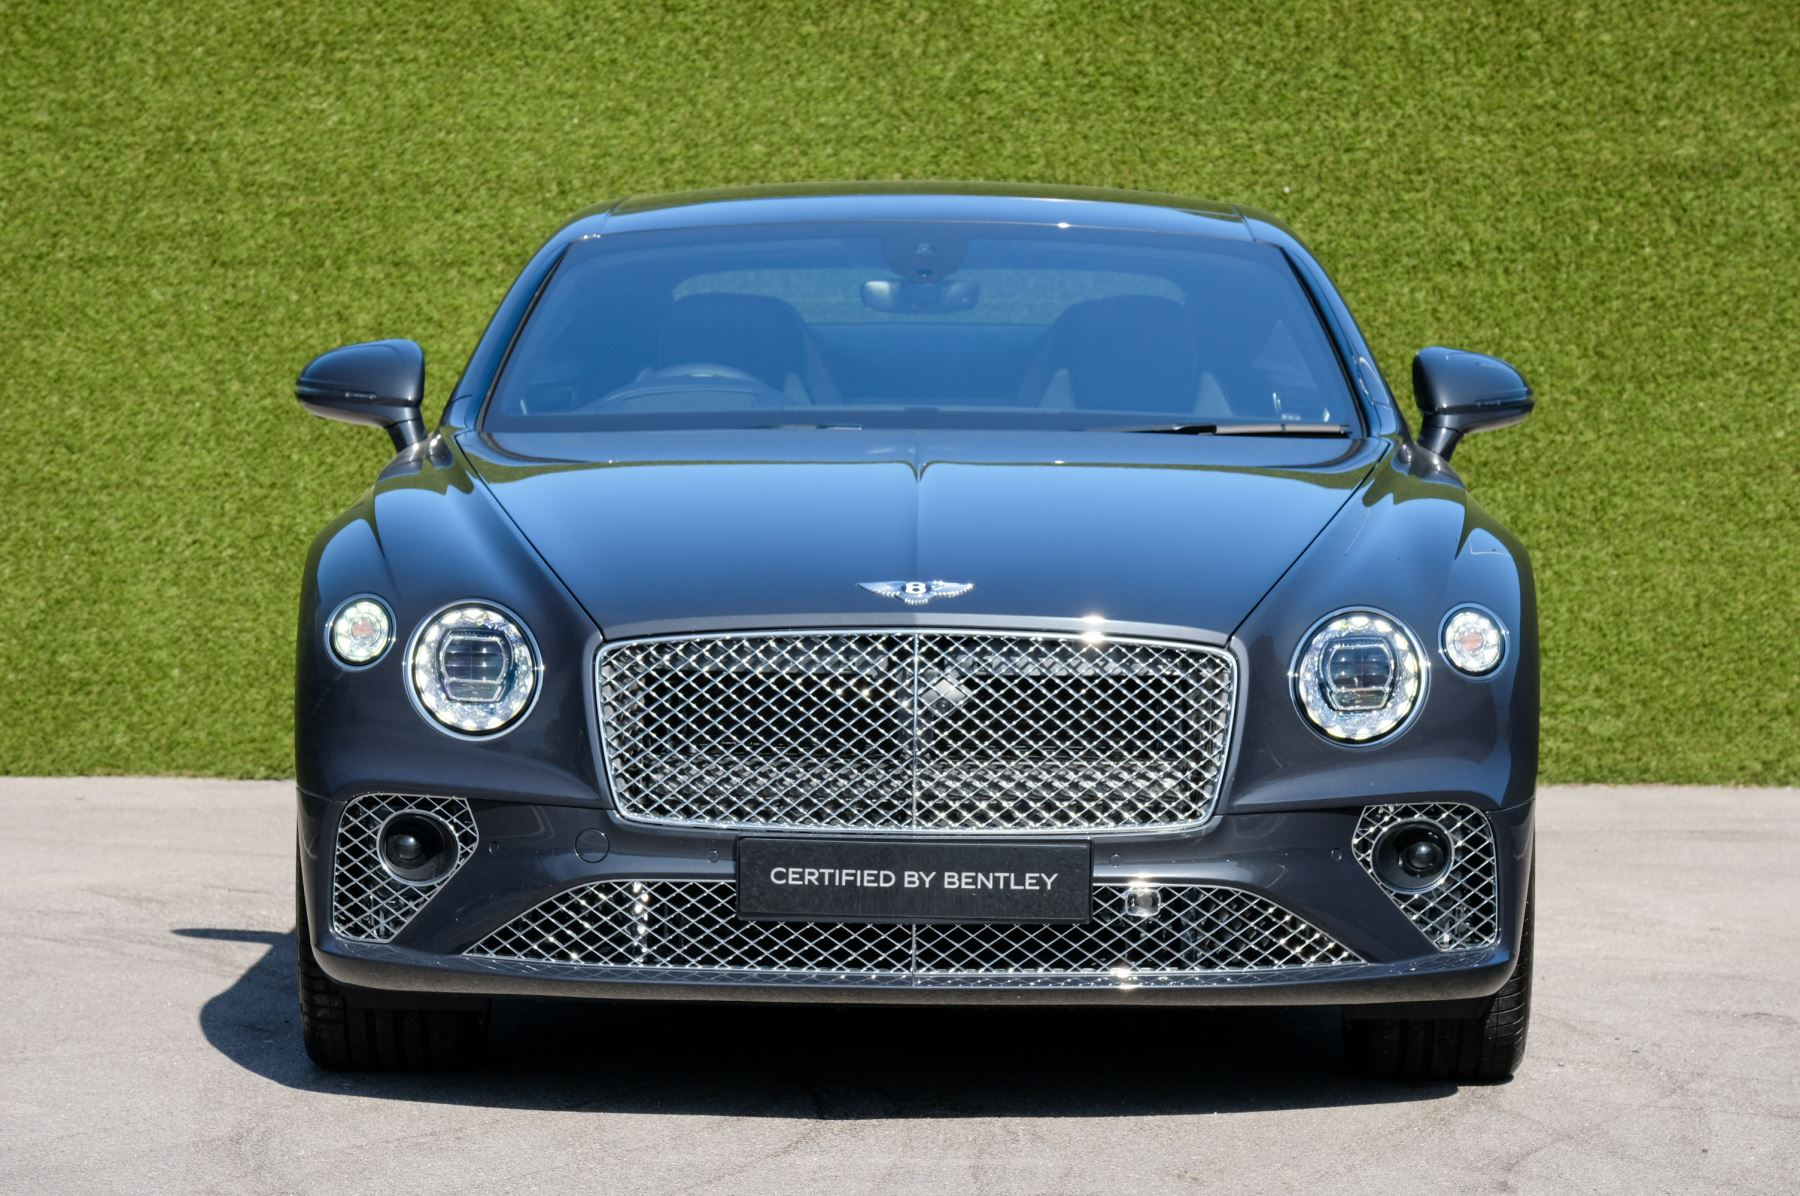 Bentley Continental GT 4.0 V8 Mulliner Edition 2dr Auto - City Specification - Panoramic Glass Roof image 2